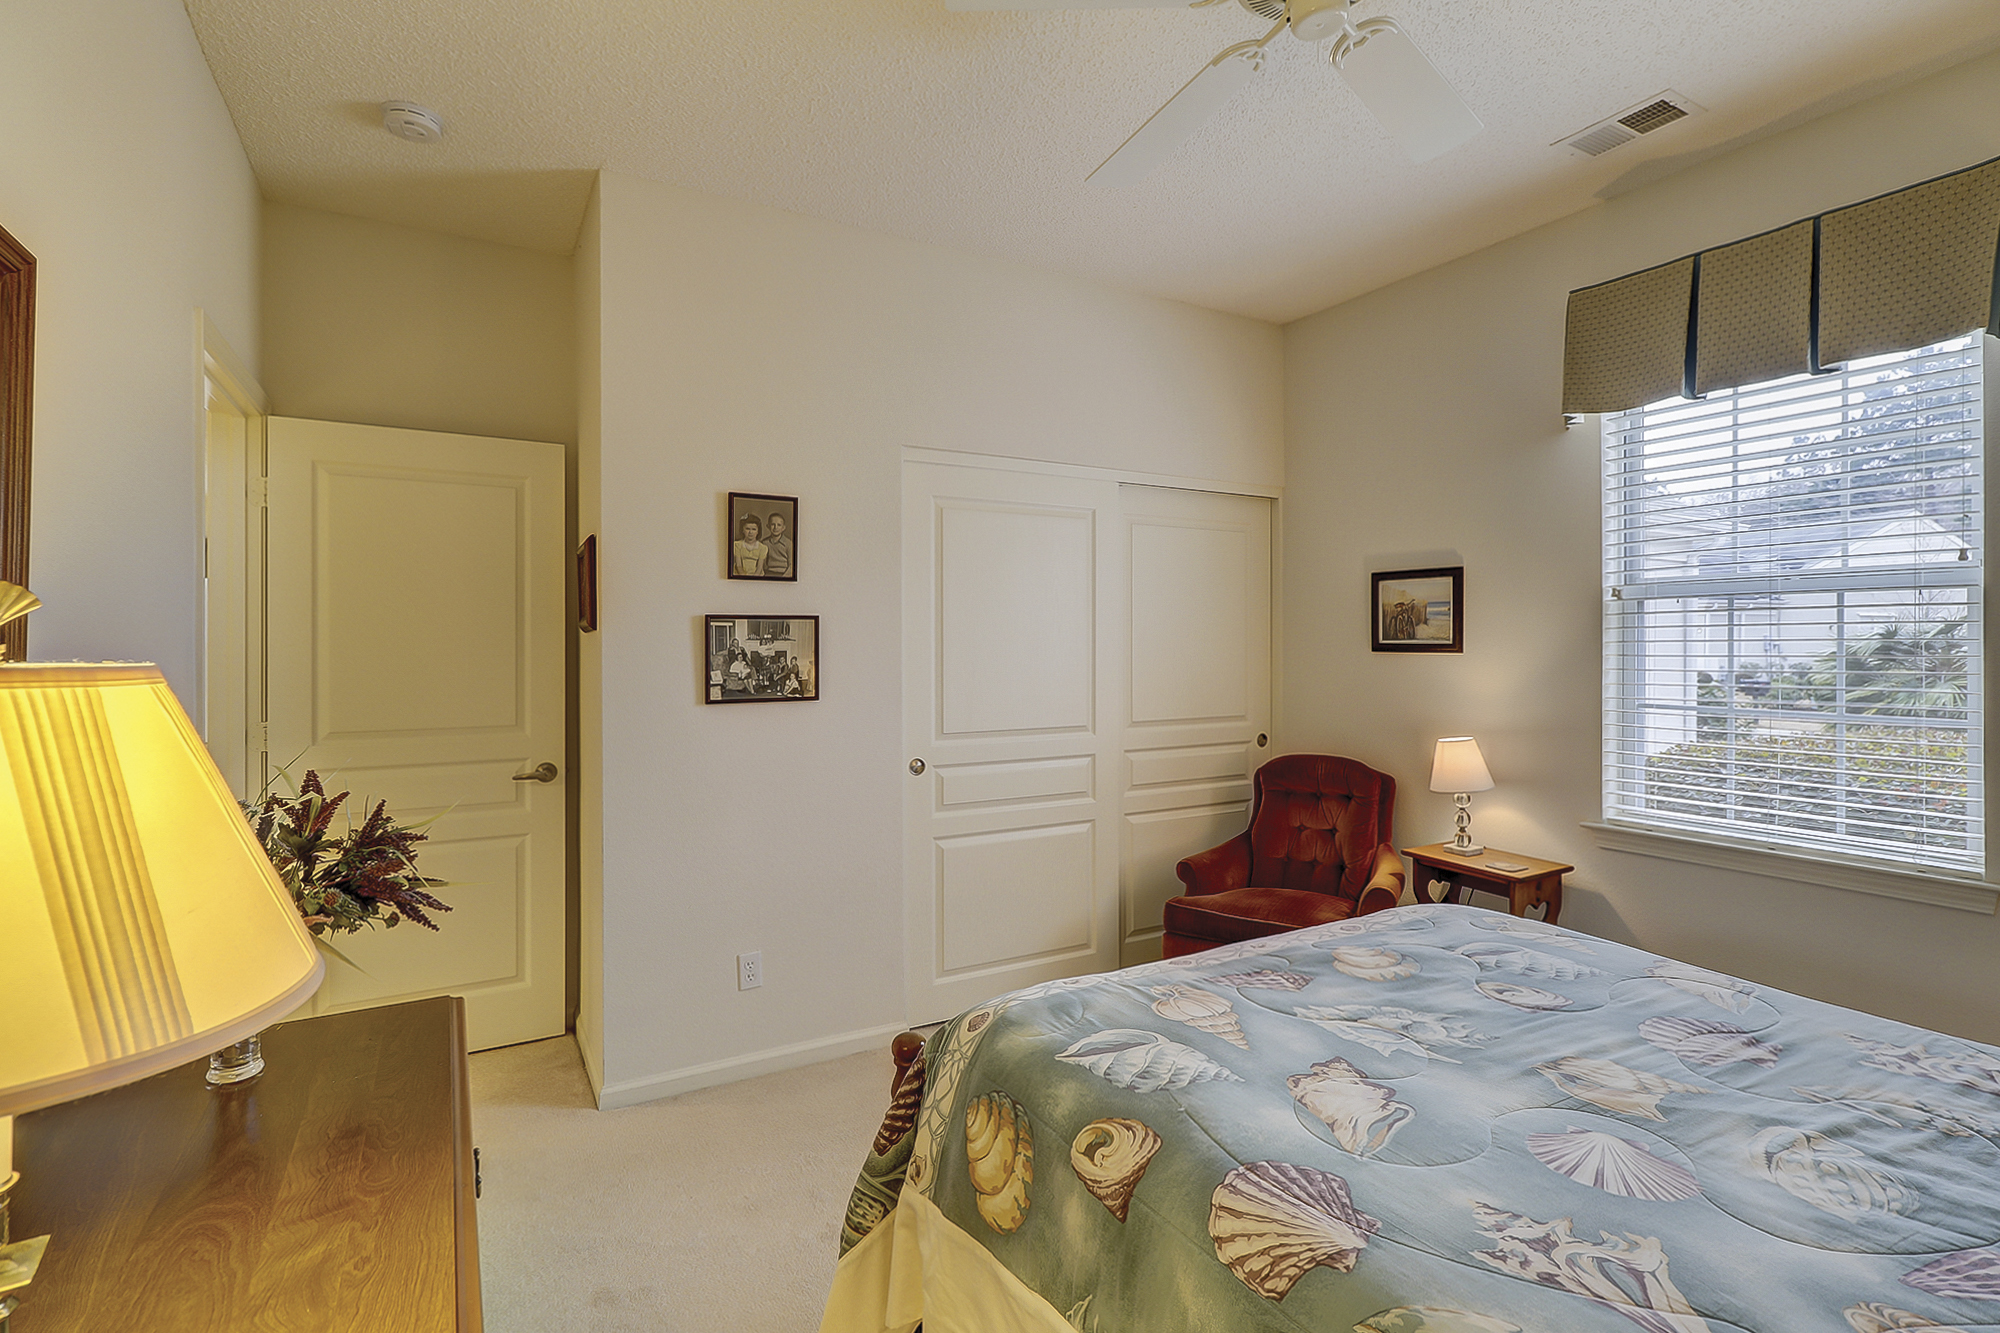 Spacious Guest Bedroom in this Sun City Hilton Head Home